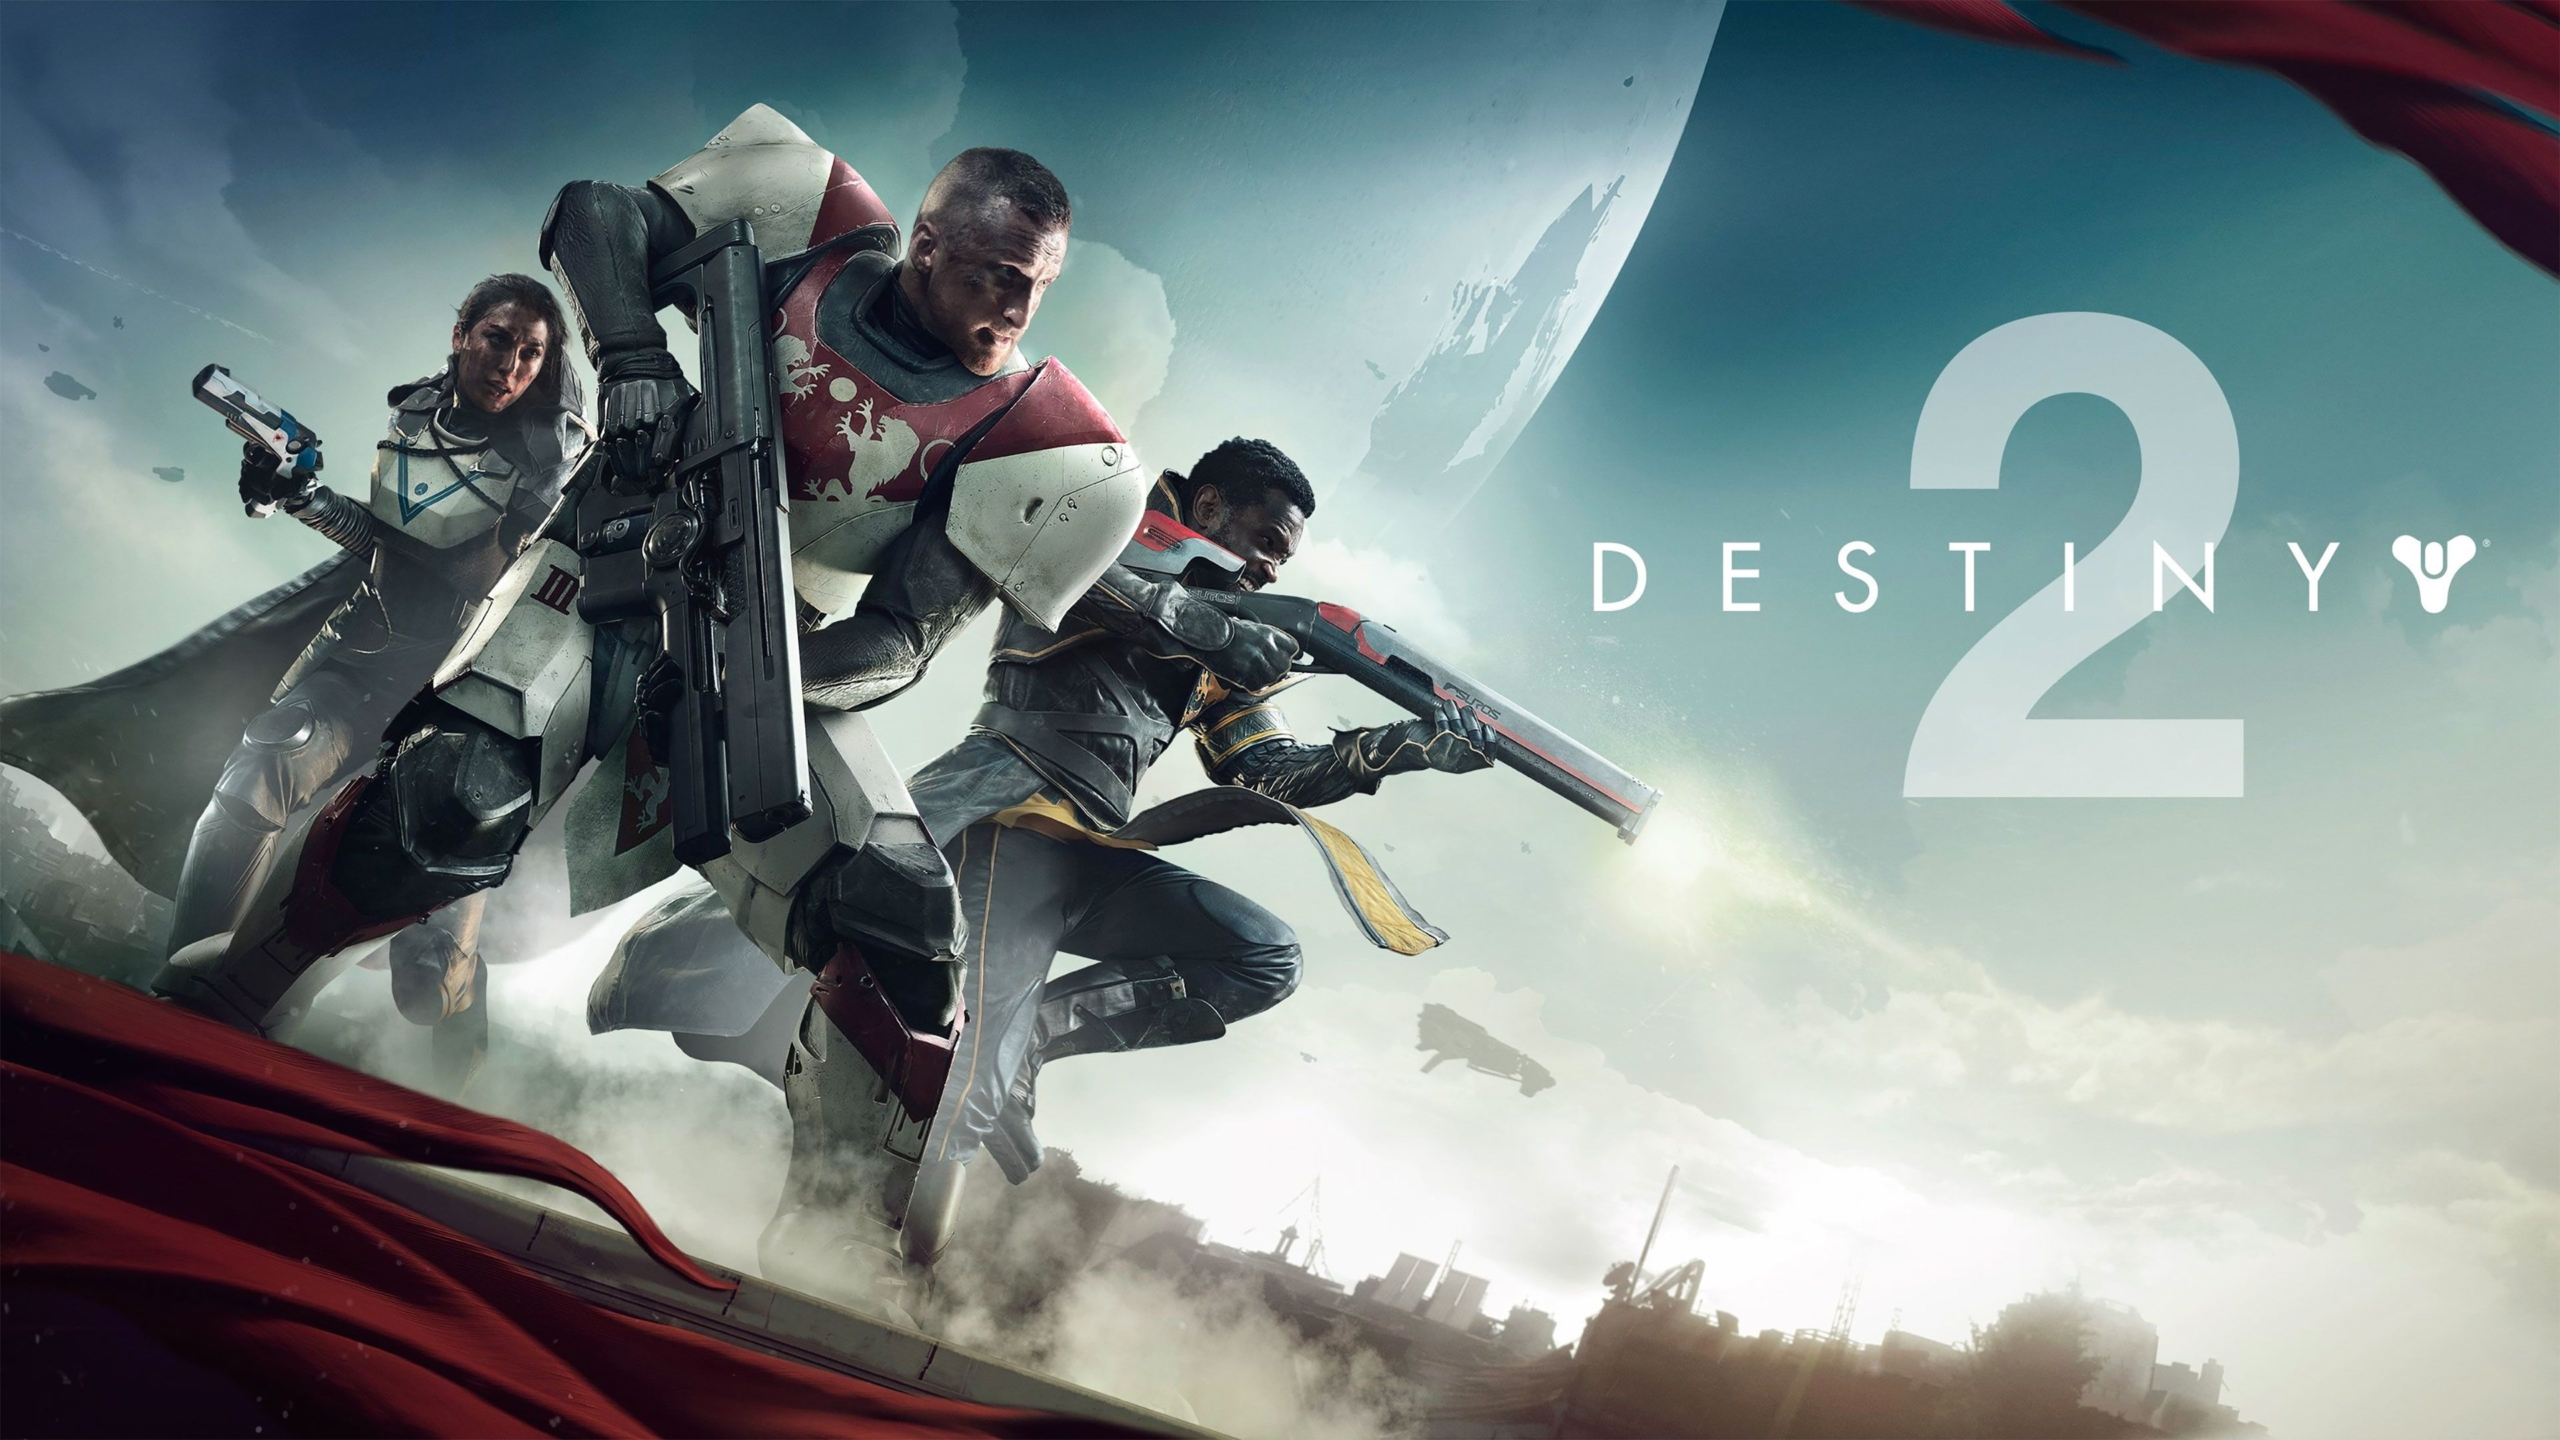 Destiny 2 Wallpaper – What is Available?